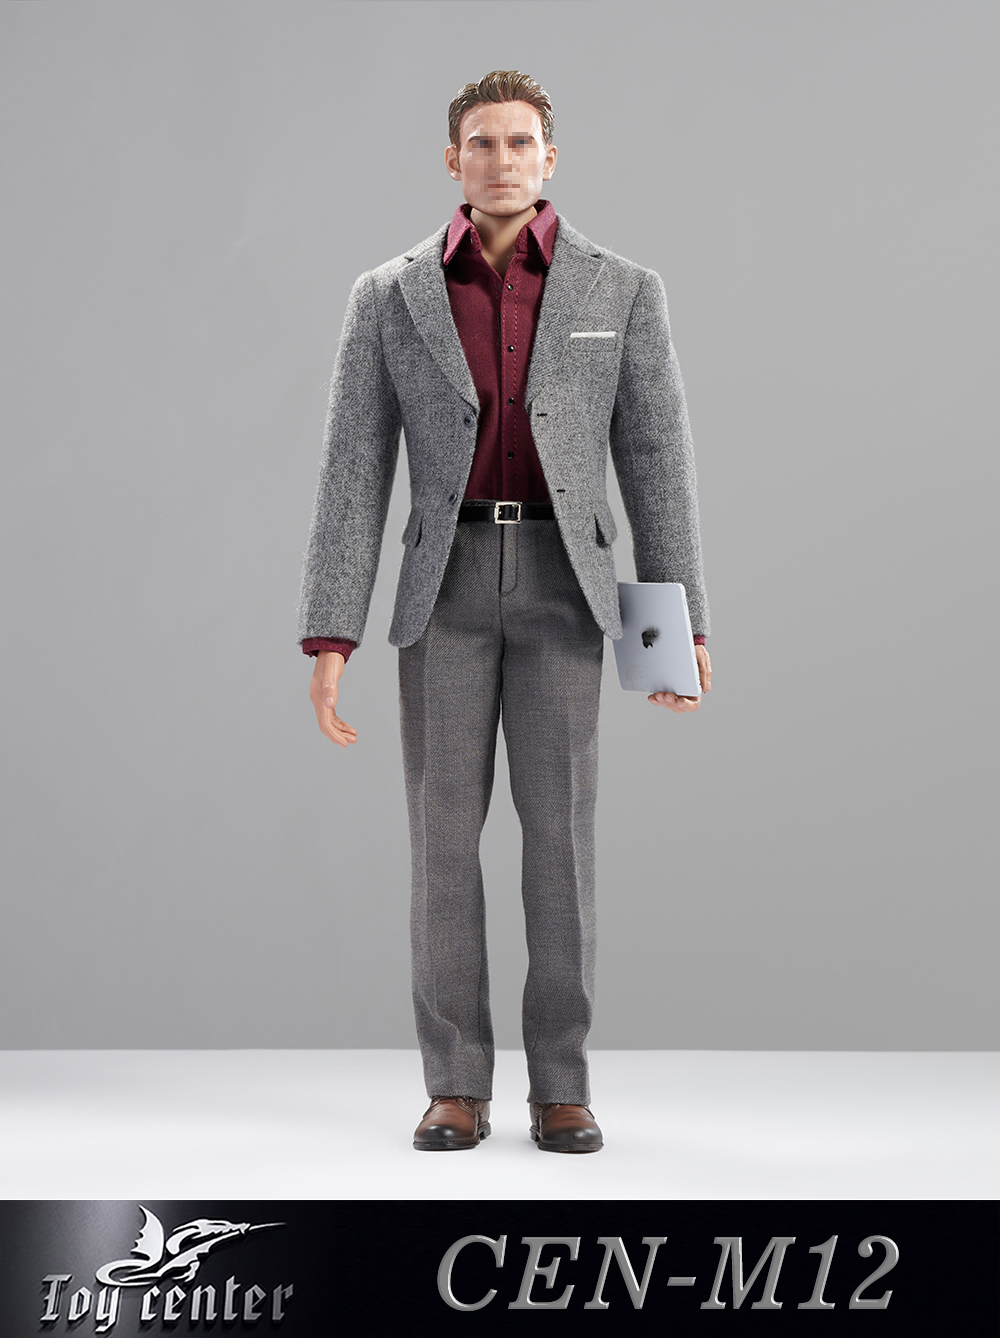 clothes - NEW PRODUCT: Toy center: 1/6 US team old casual suit CEN-M12# 16064010